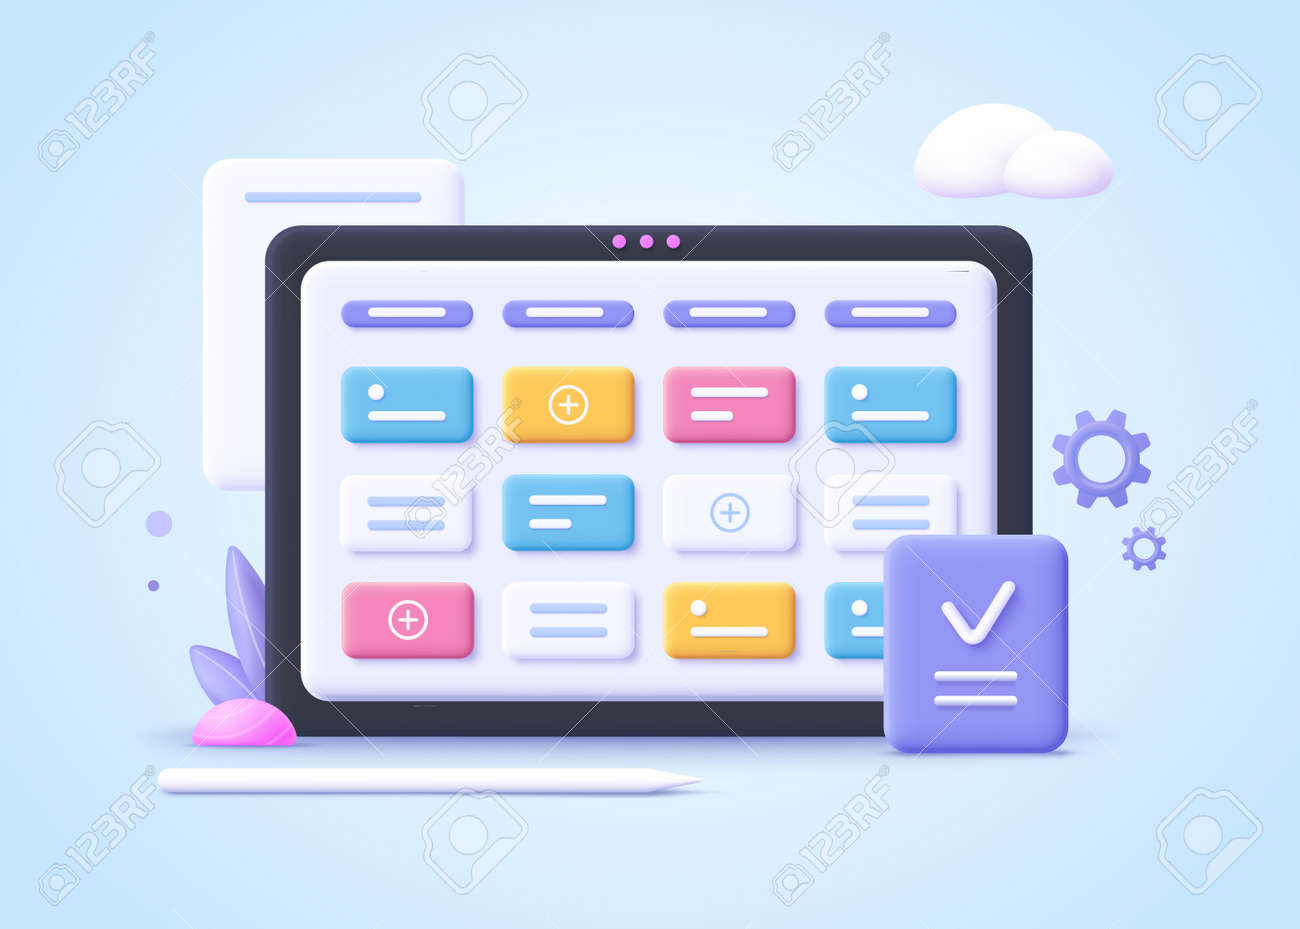 Concept of kanban board, agile project management concept, work schedule organization, time planning and workflow managing.3d realistic vector illustration. - 170709868